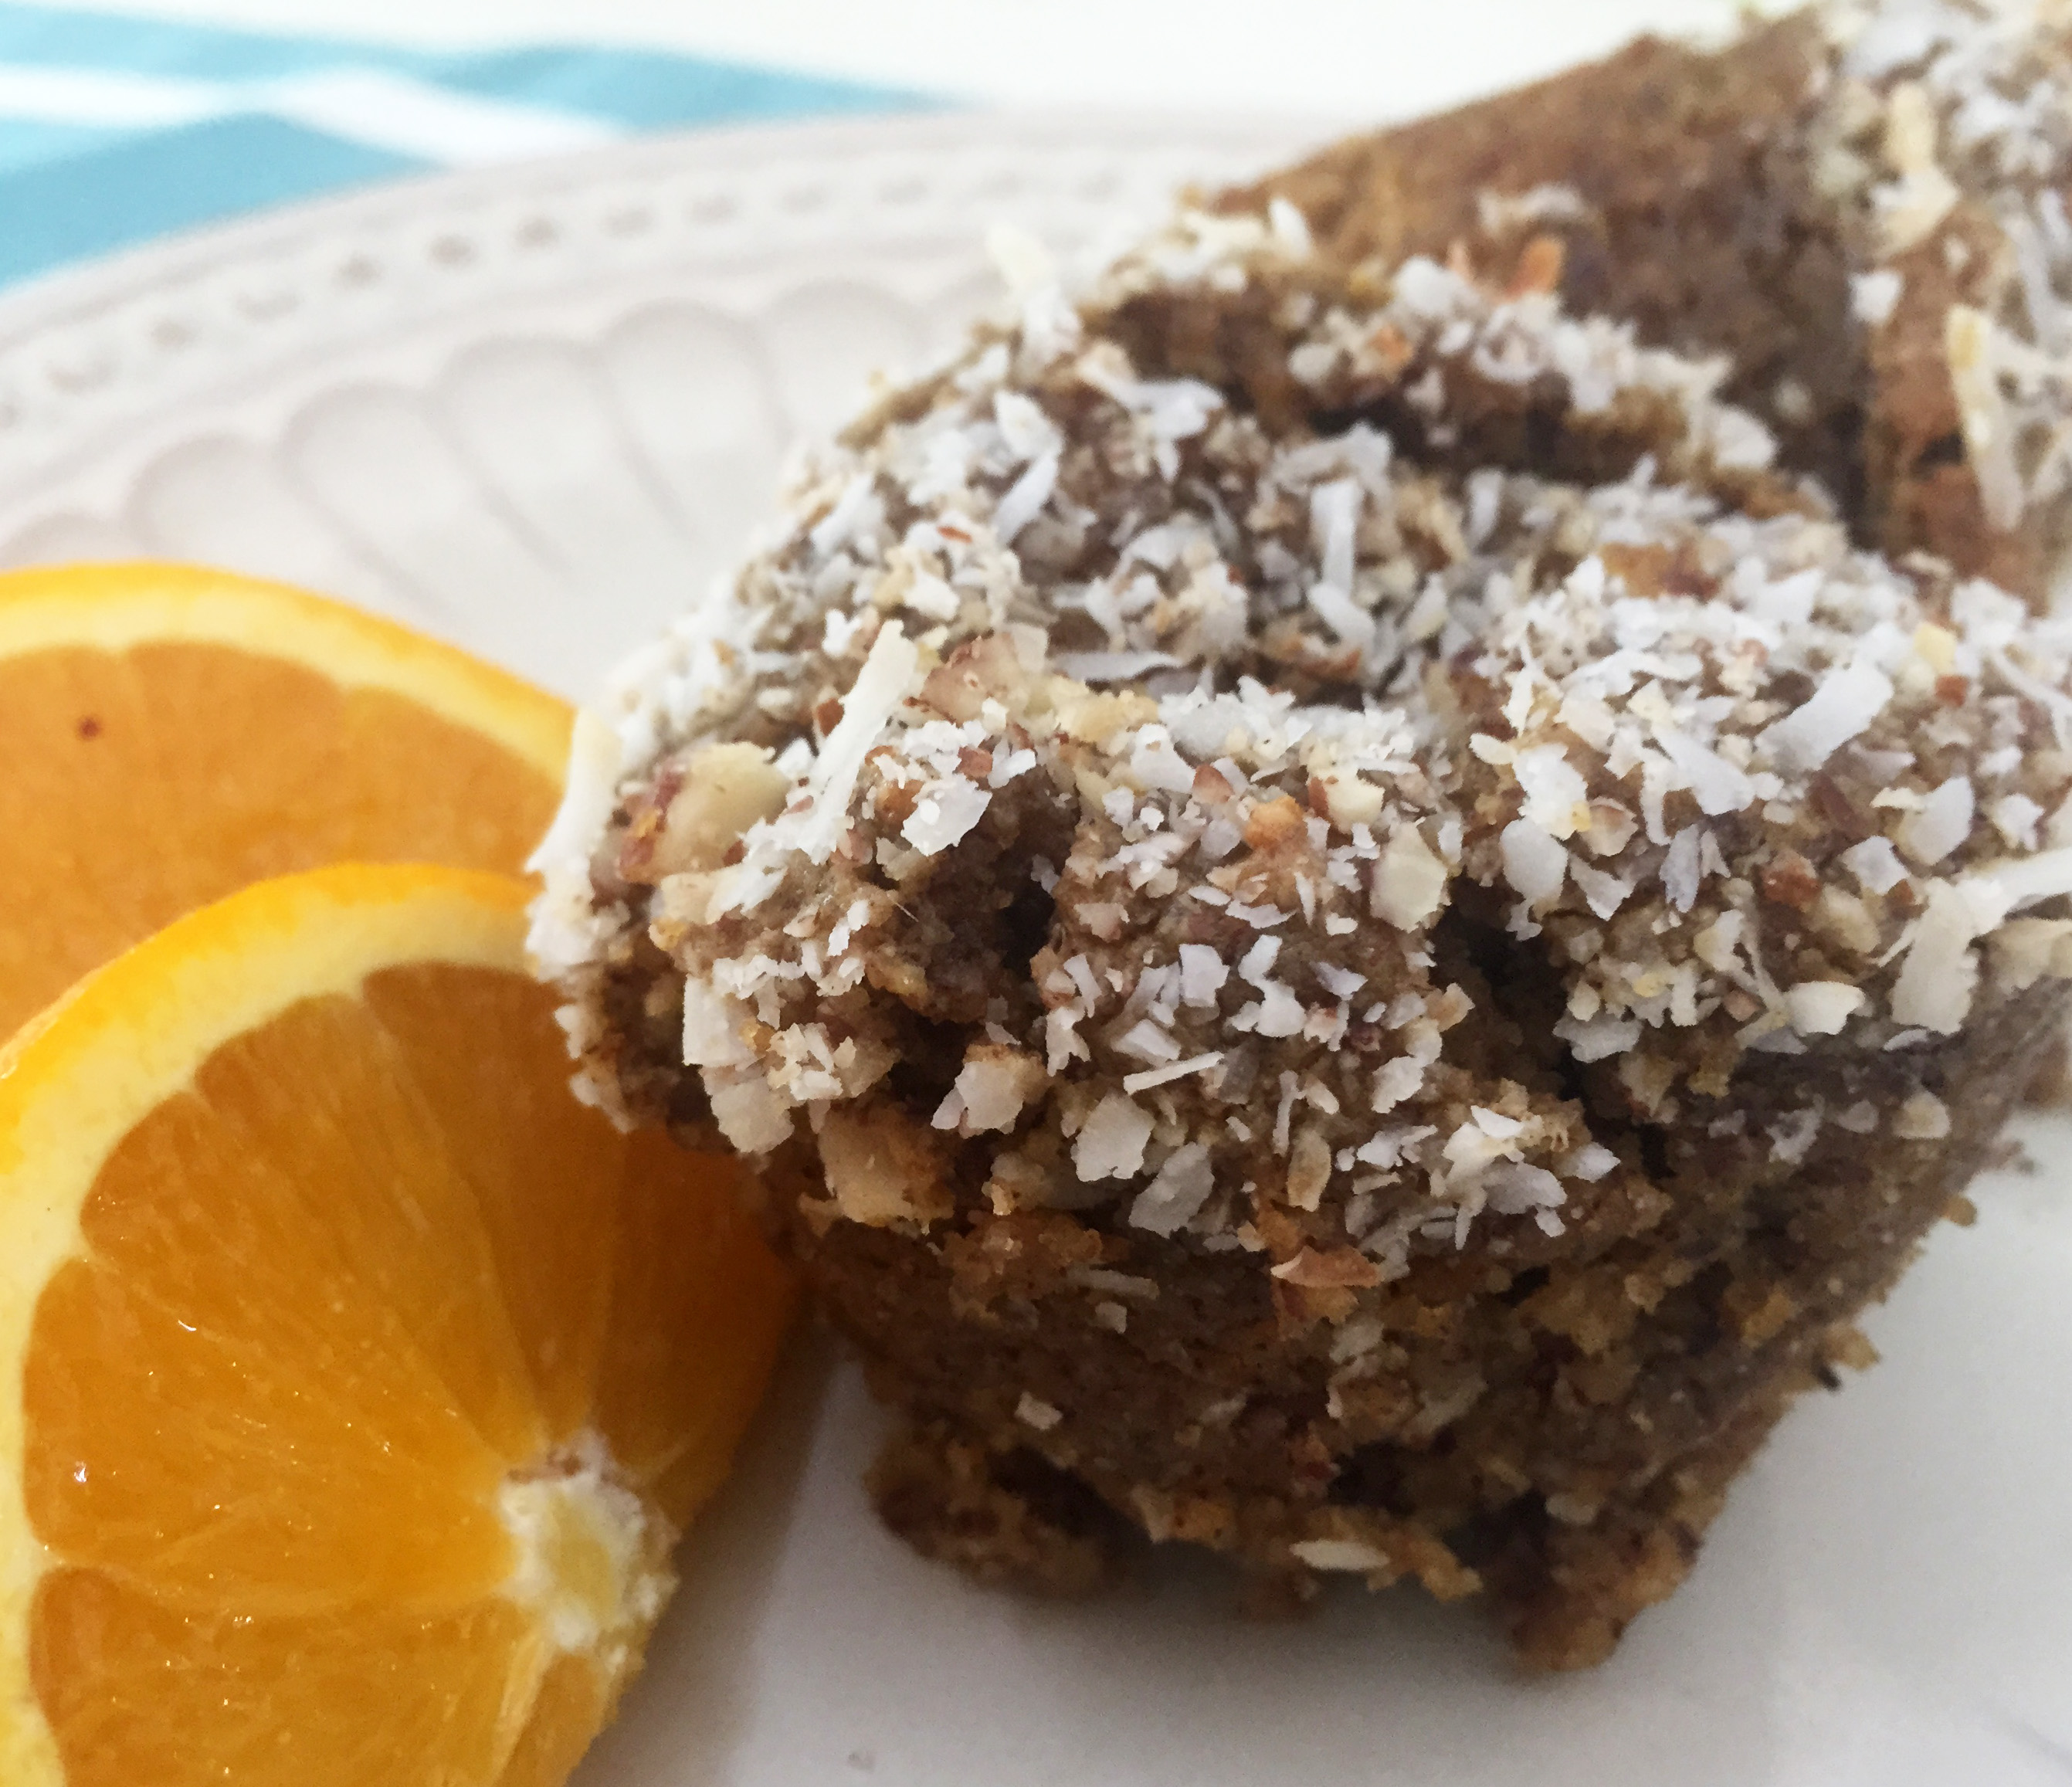 Fall-Inspired Paleo Pumpkin Muffins (with Ginger and Orange)